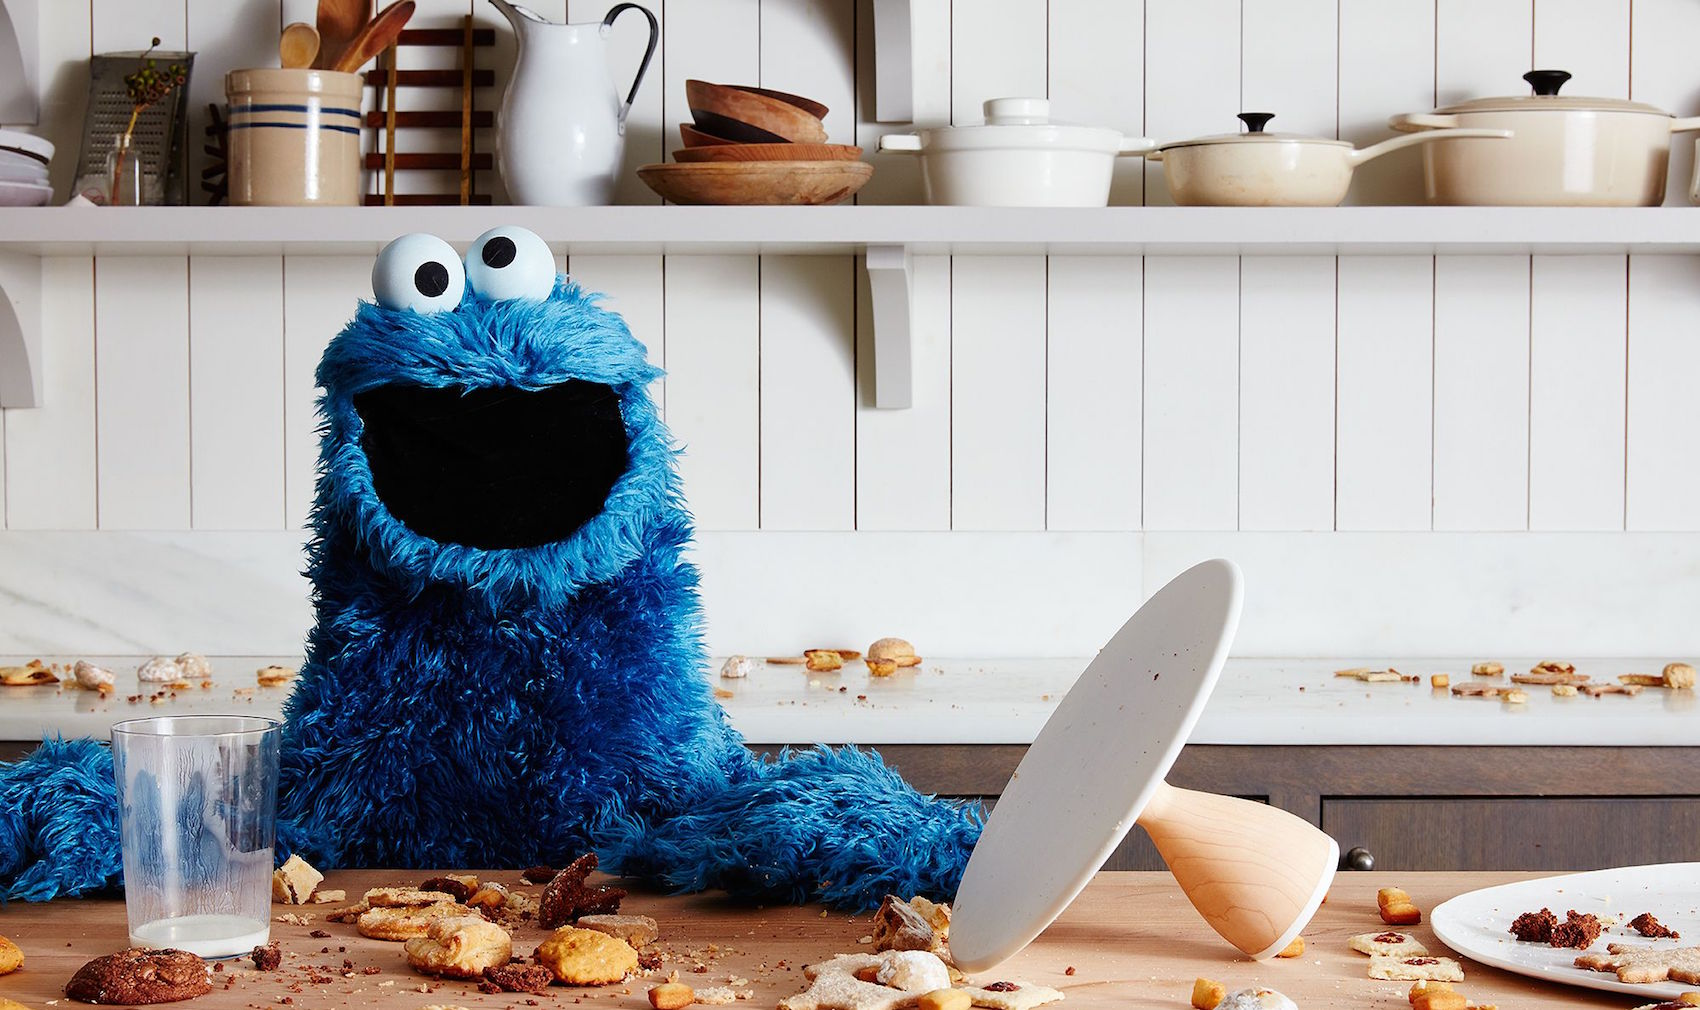 8c7ff191-931f-484b-aa1d-0cdc79ceb0fa-2015-1209_cookie-monster_mess_sq_james-ransom-162